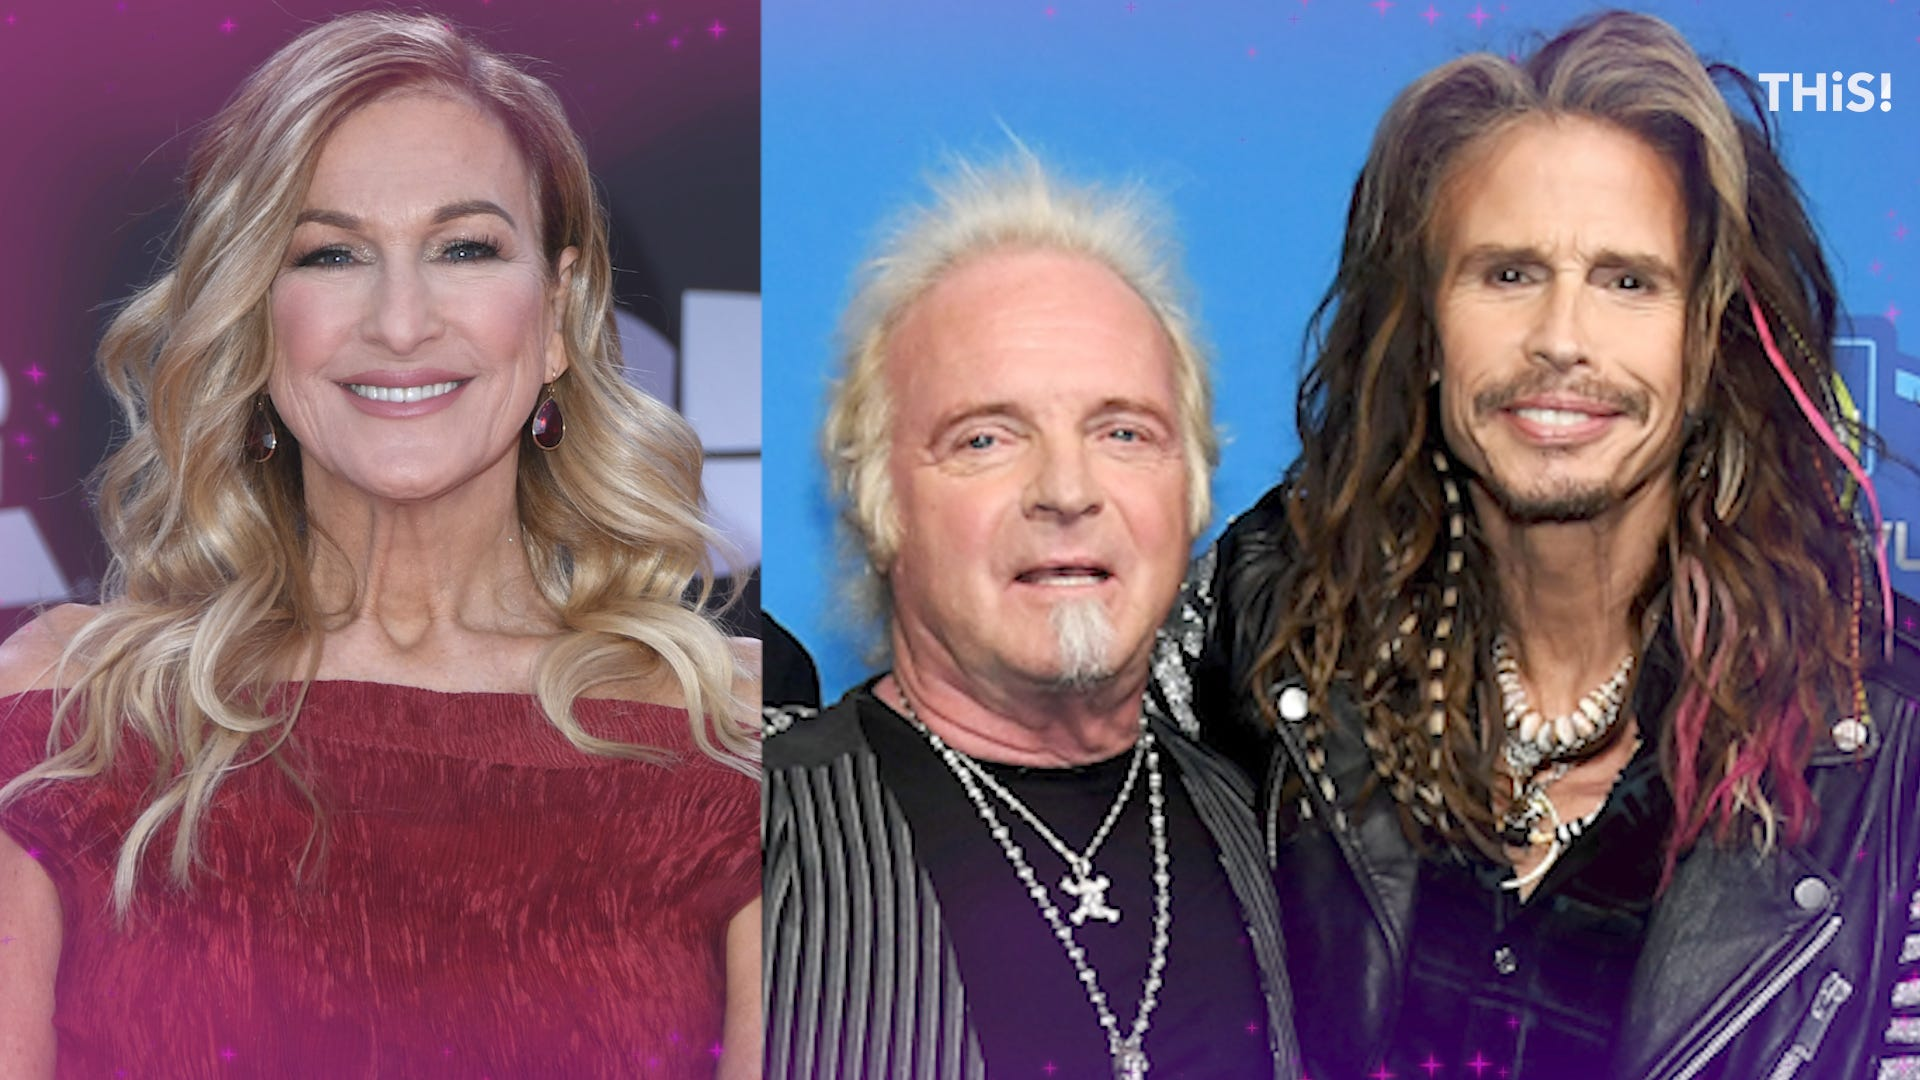 Grammys 2020 drama with Aerosmith drummer's lawsuit and Academy CEO ahead of award show